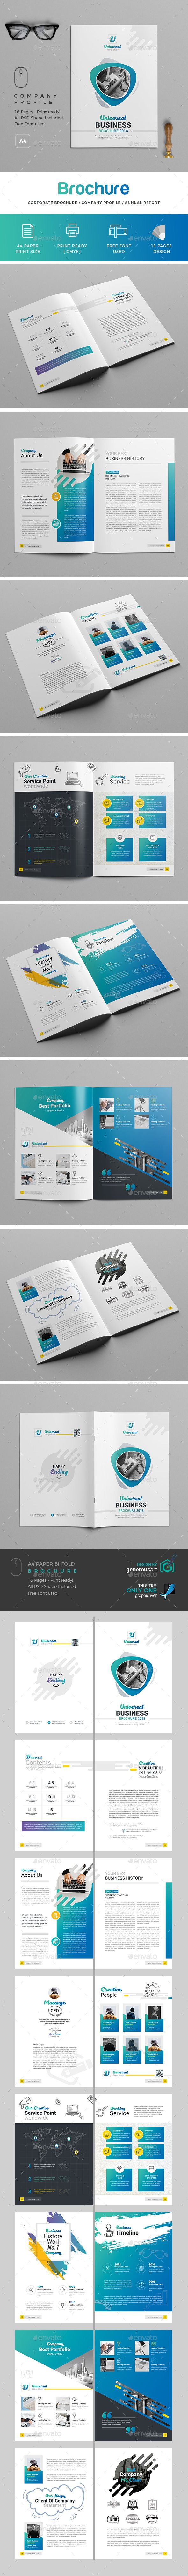 "Brochure  Specification      CMYK Color Mode     300 DPI Resolution     Print Size (A4 Paper) (8.27×11.69"")     3 mm Bleed in Each Side  Features      Free Fonts     Smart Object For Replace Photo & Logo     Infographic element 100% editable     All Illustrations Included     16 PSD Files (32 Pages)     Read me.txt (help file)"